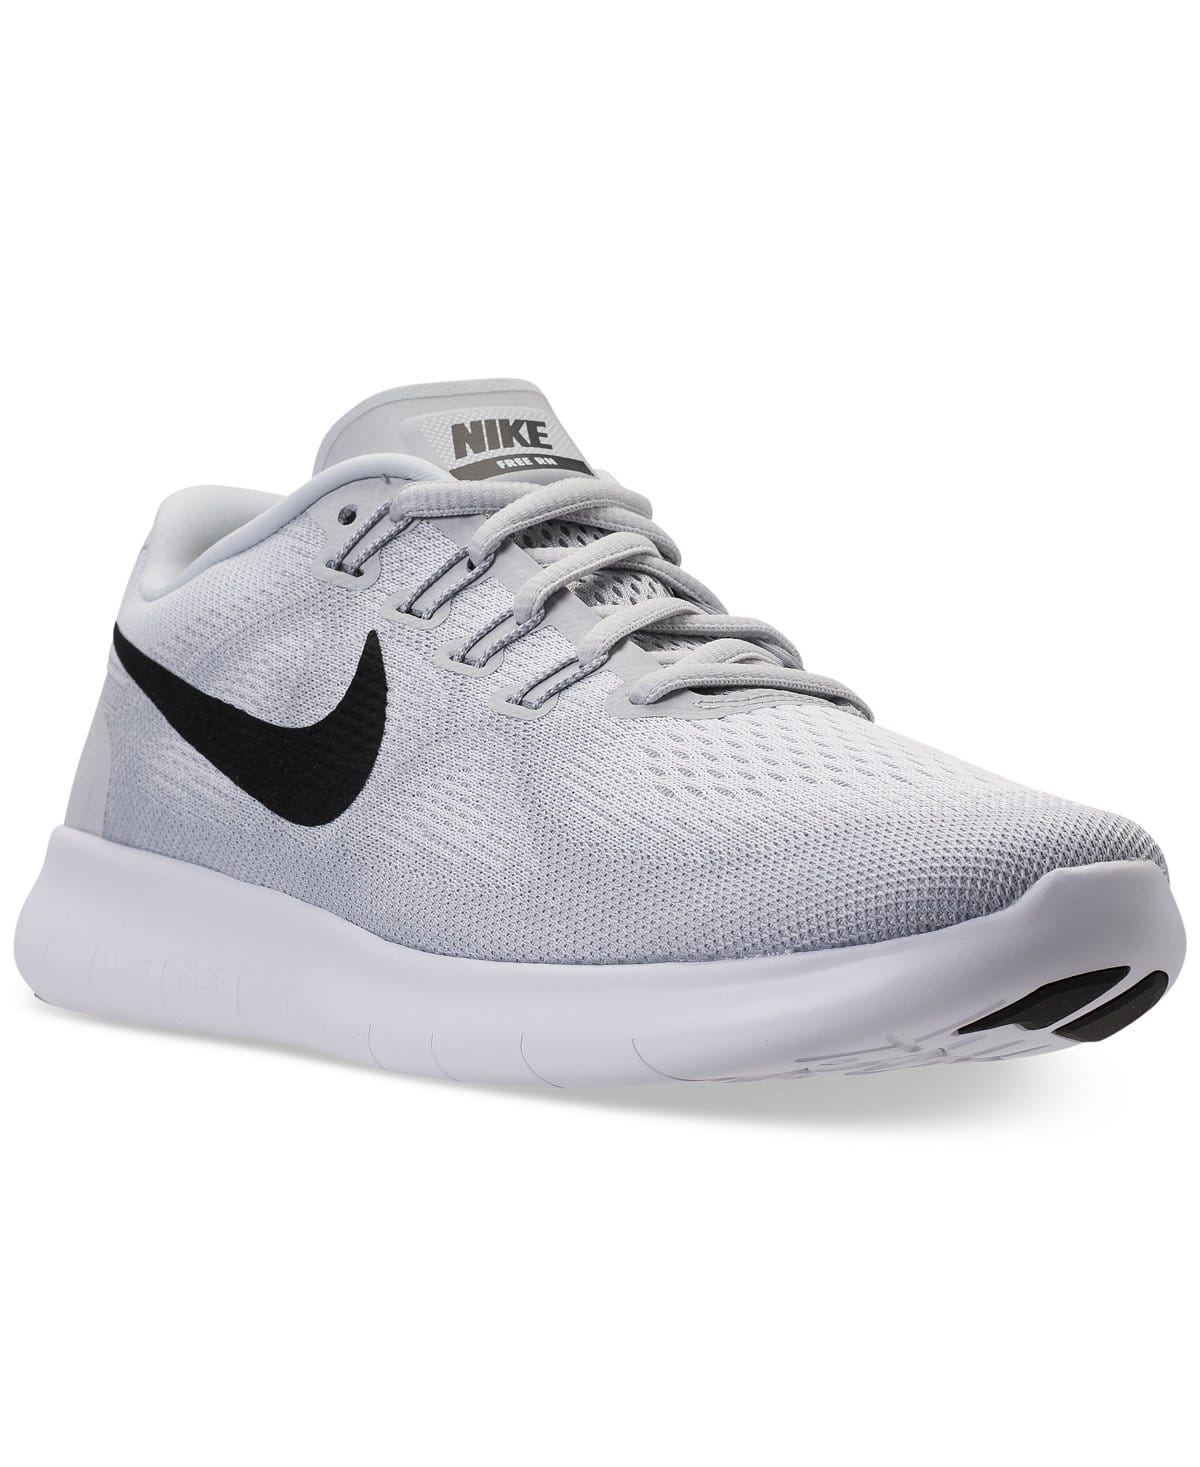 7a0a7049a4c0 ... top quality nike free run 2017 shoes womens from 45 mens from  slickdeals fc96a 3df87